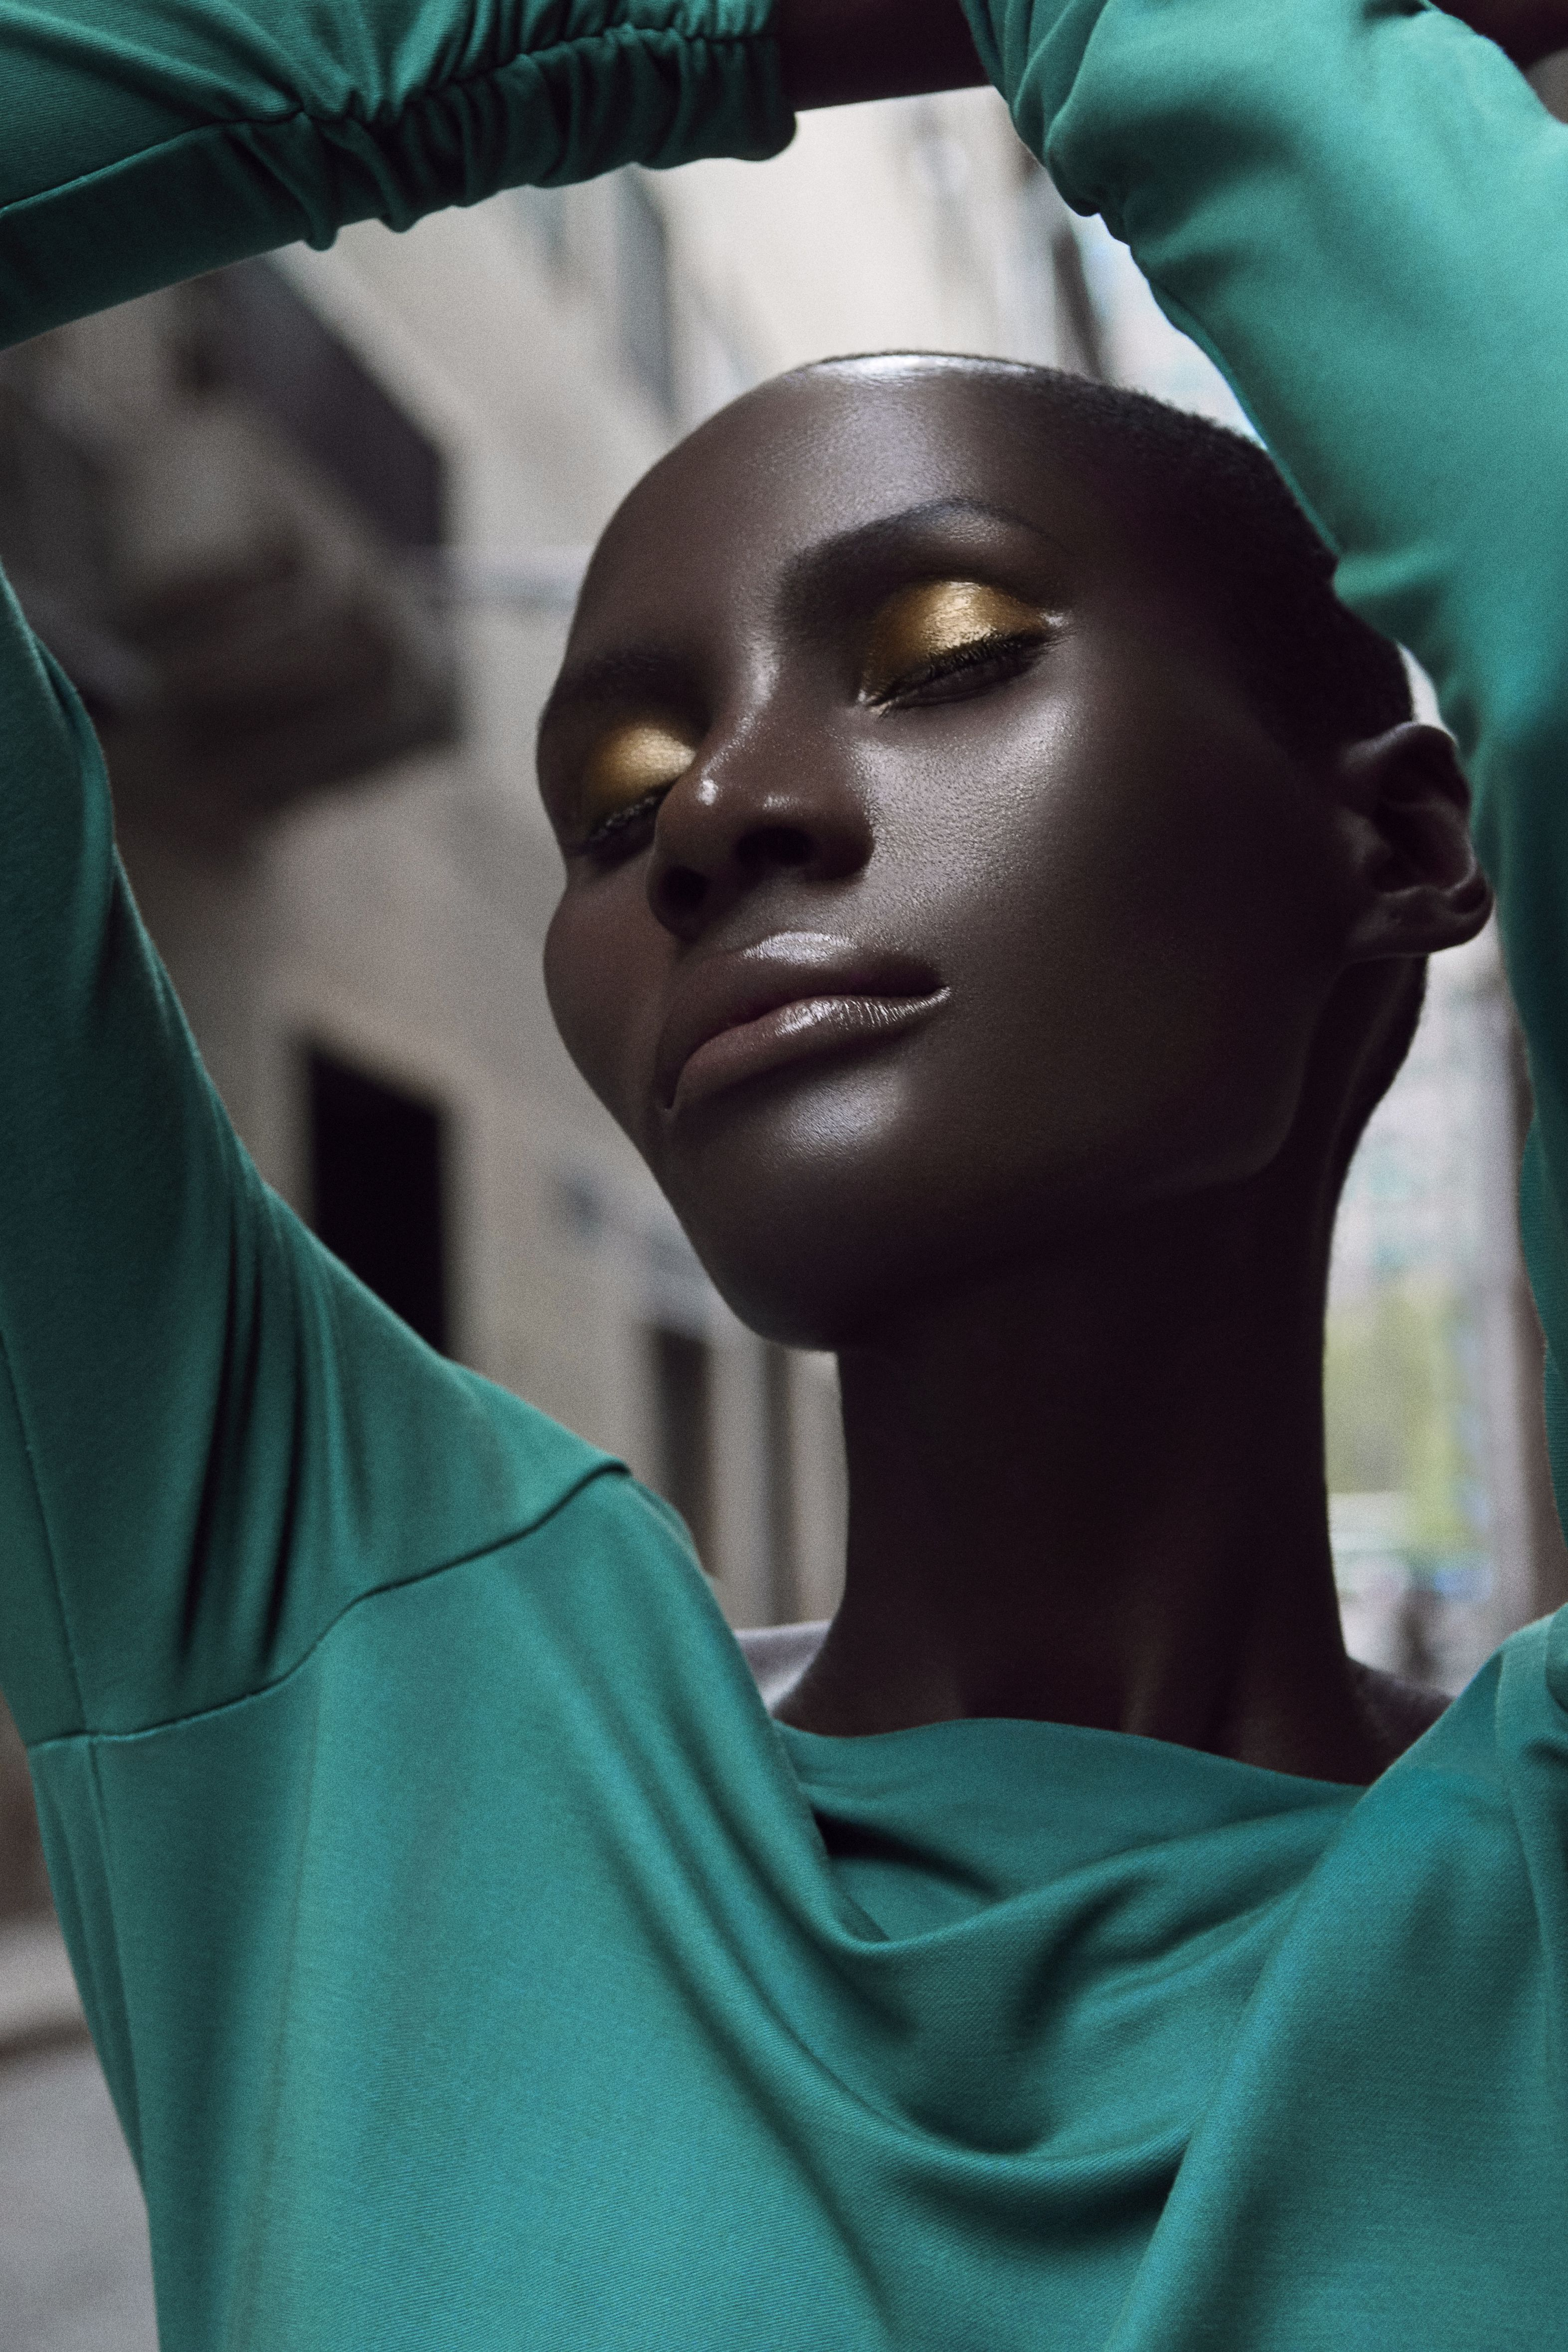 Pin by Ania on Iamania Dark skin makeup, Makeup tips for